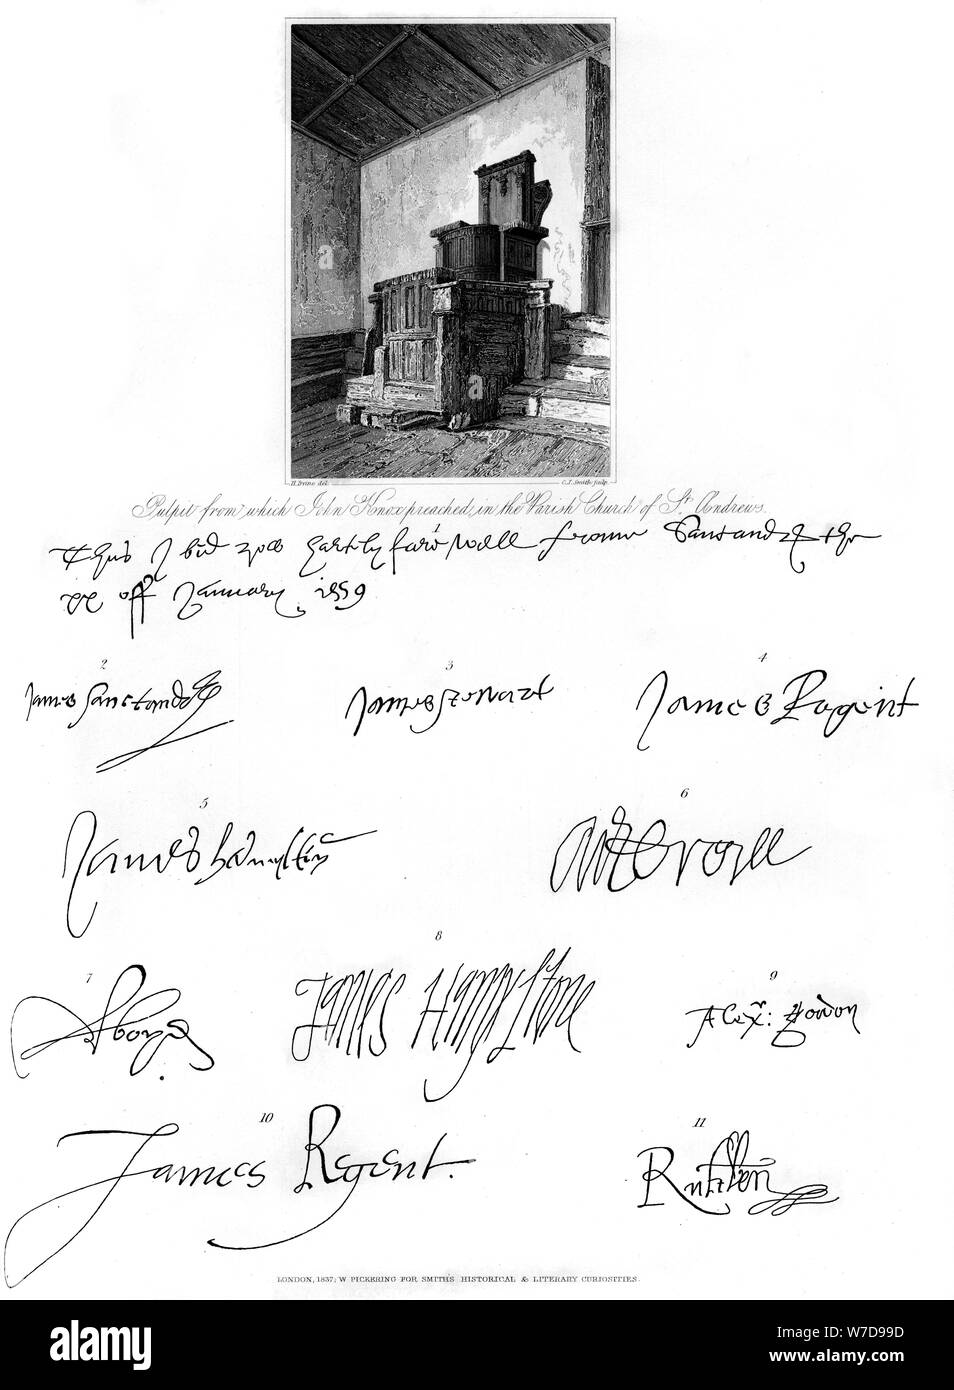 The pulpit of John Knox, and signatures of several eminent personages, 16th century, (1840).Artist: C J Smith Stock Photo